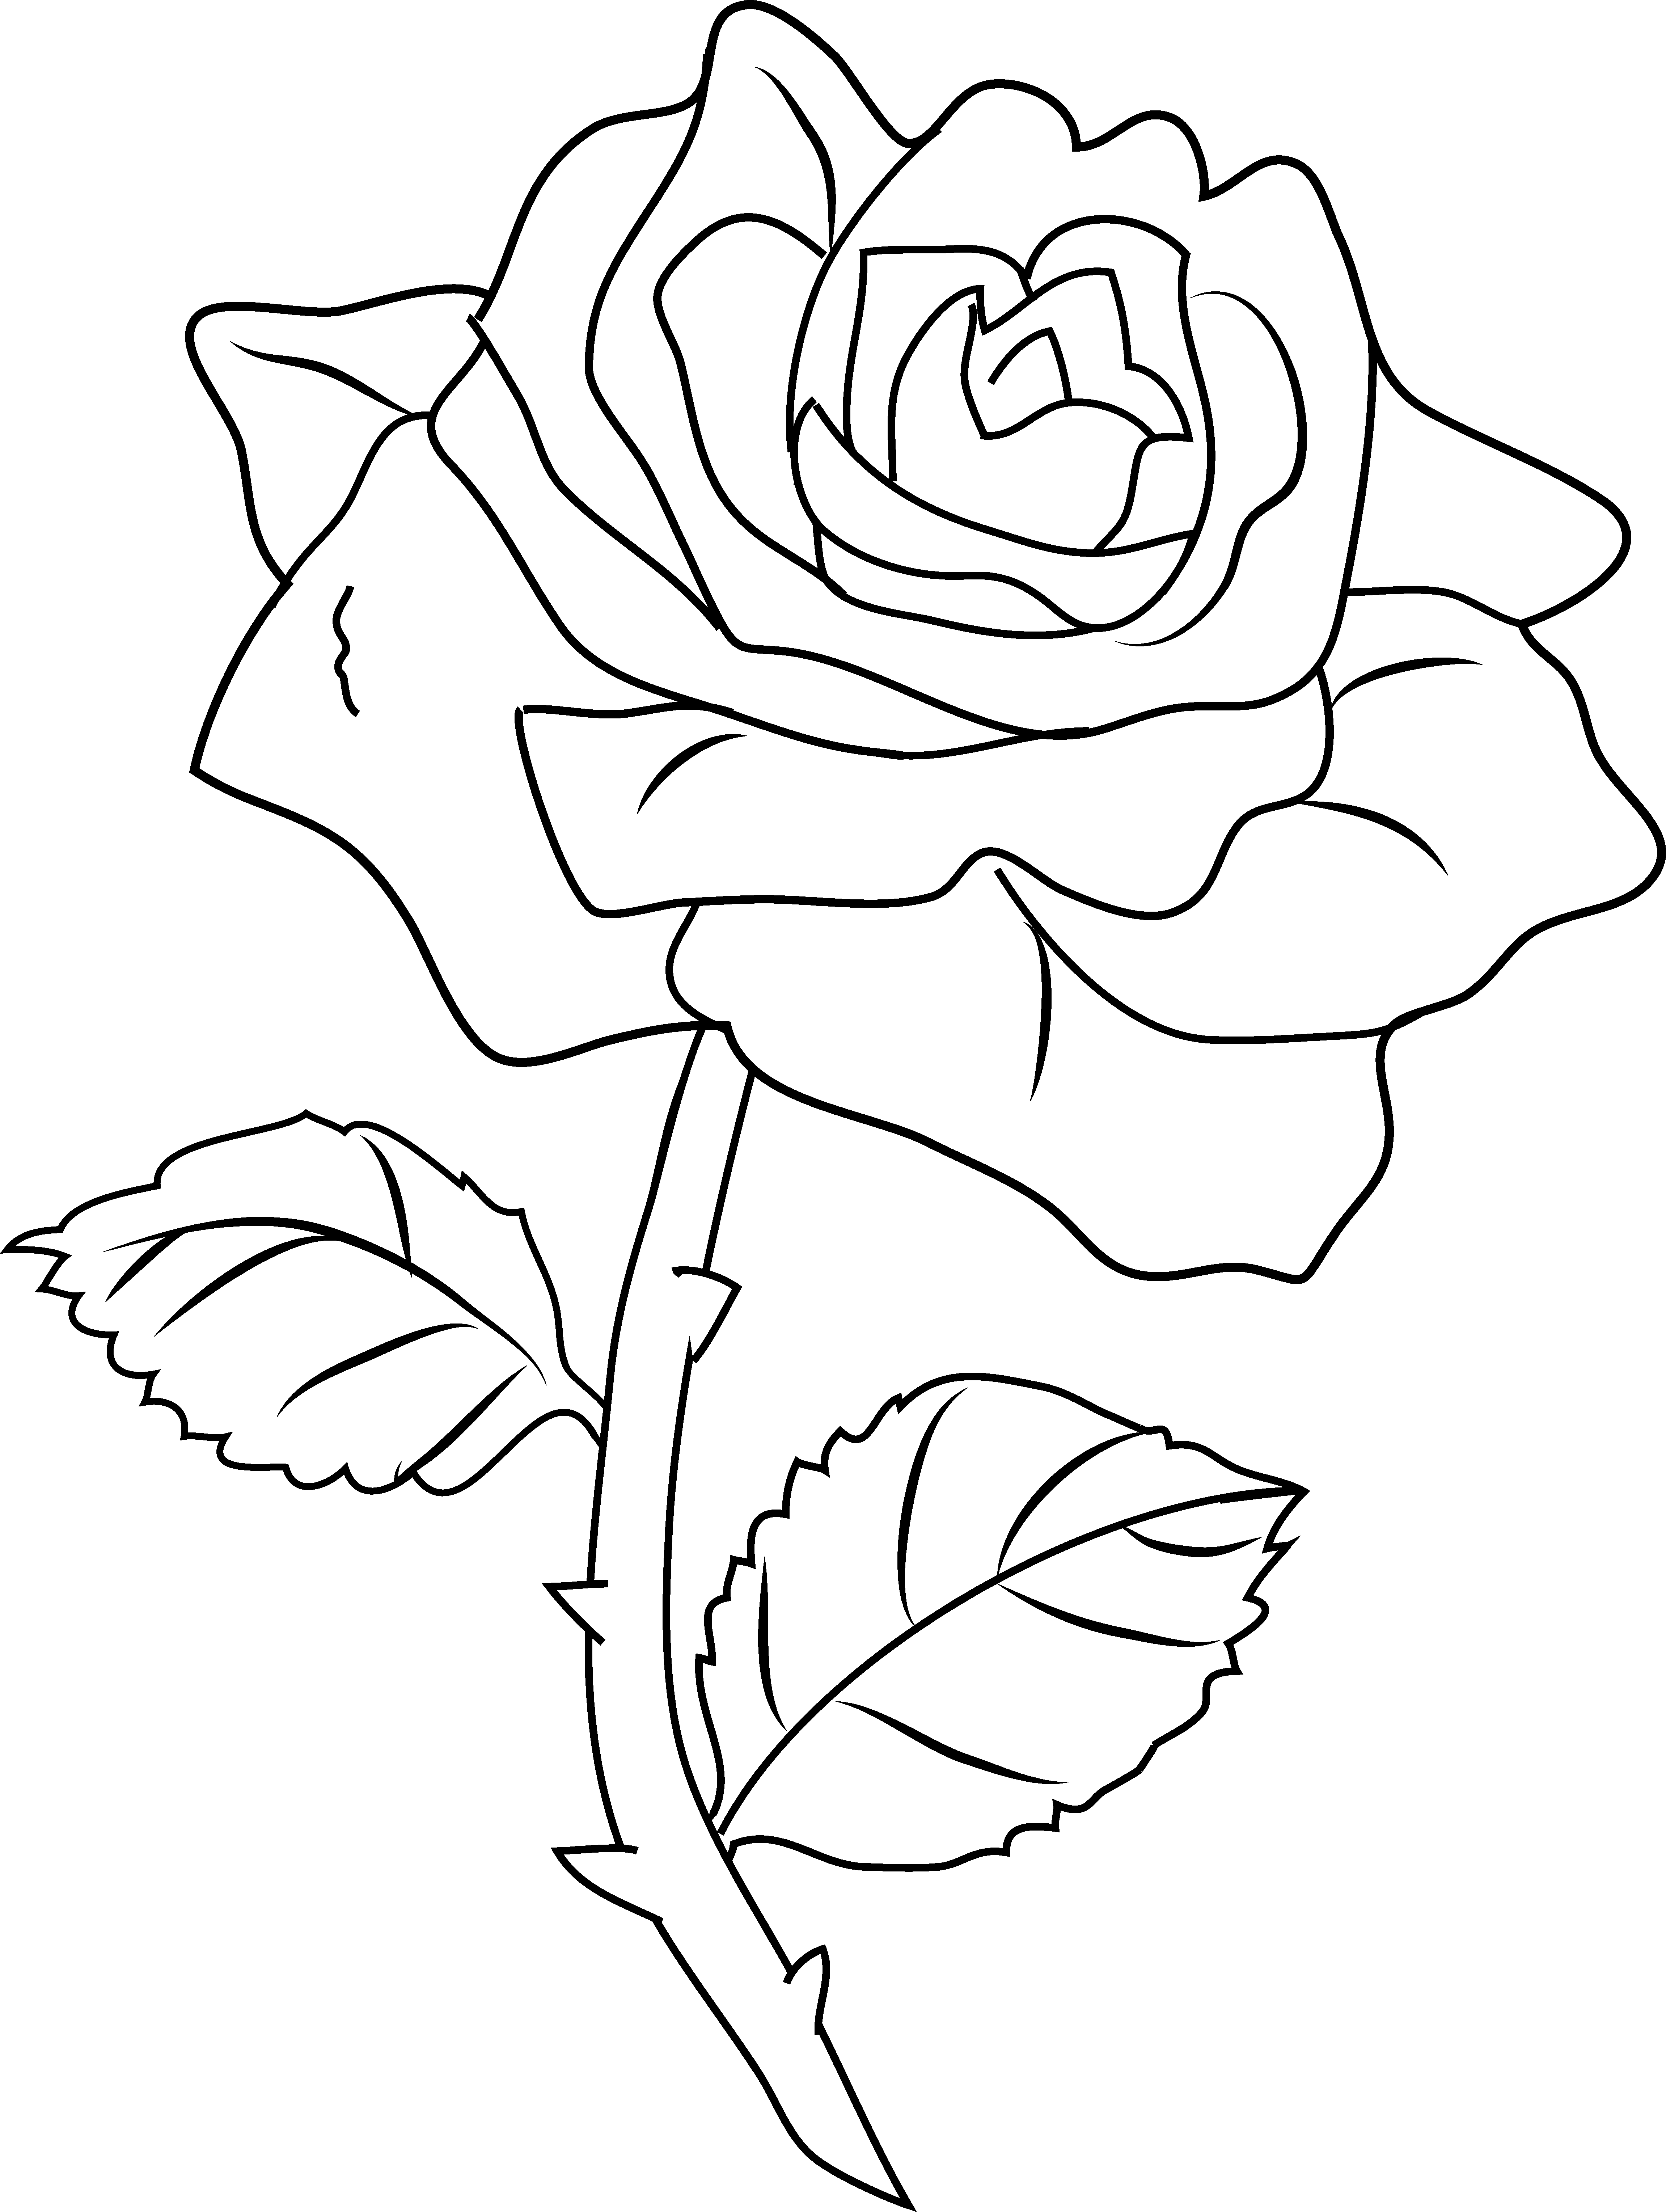 rose color sheets roses coloring pages getcoloringpagescom rose color sheets